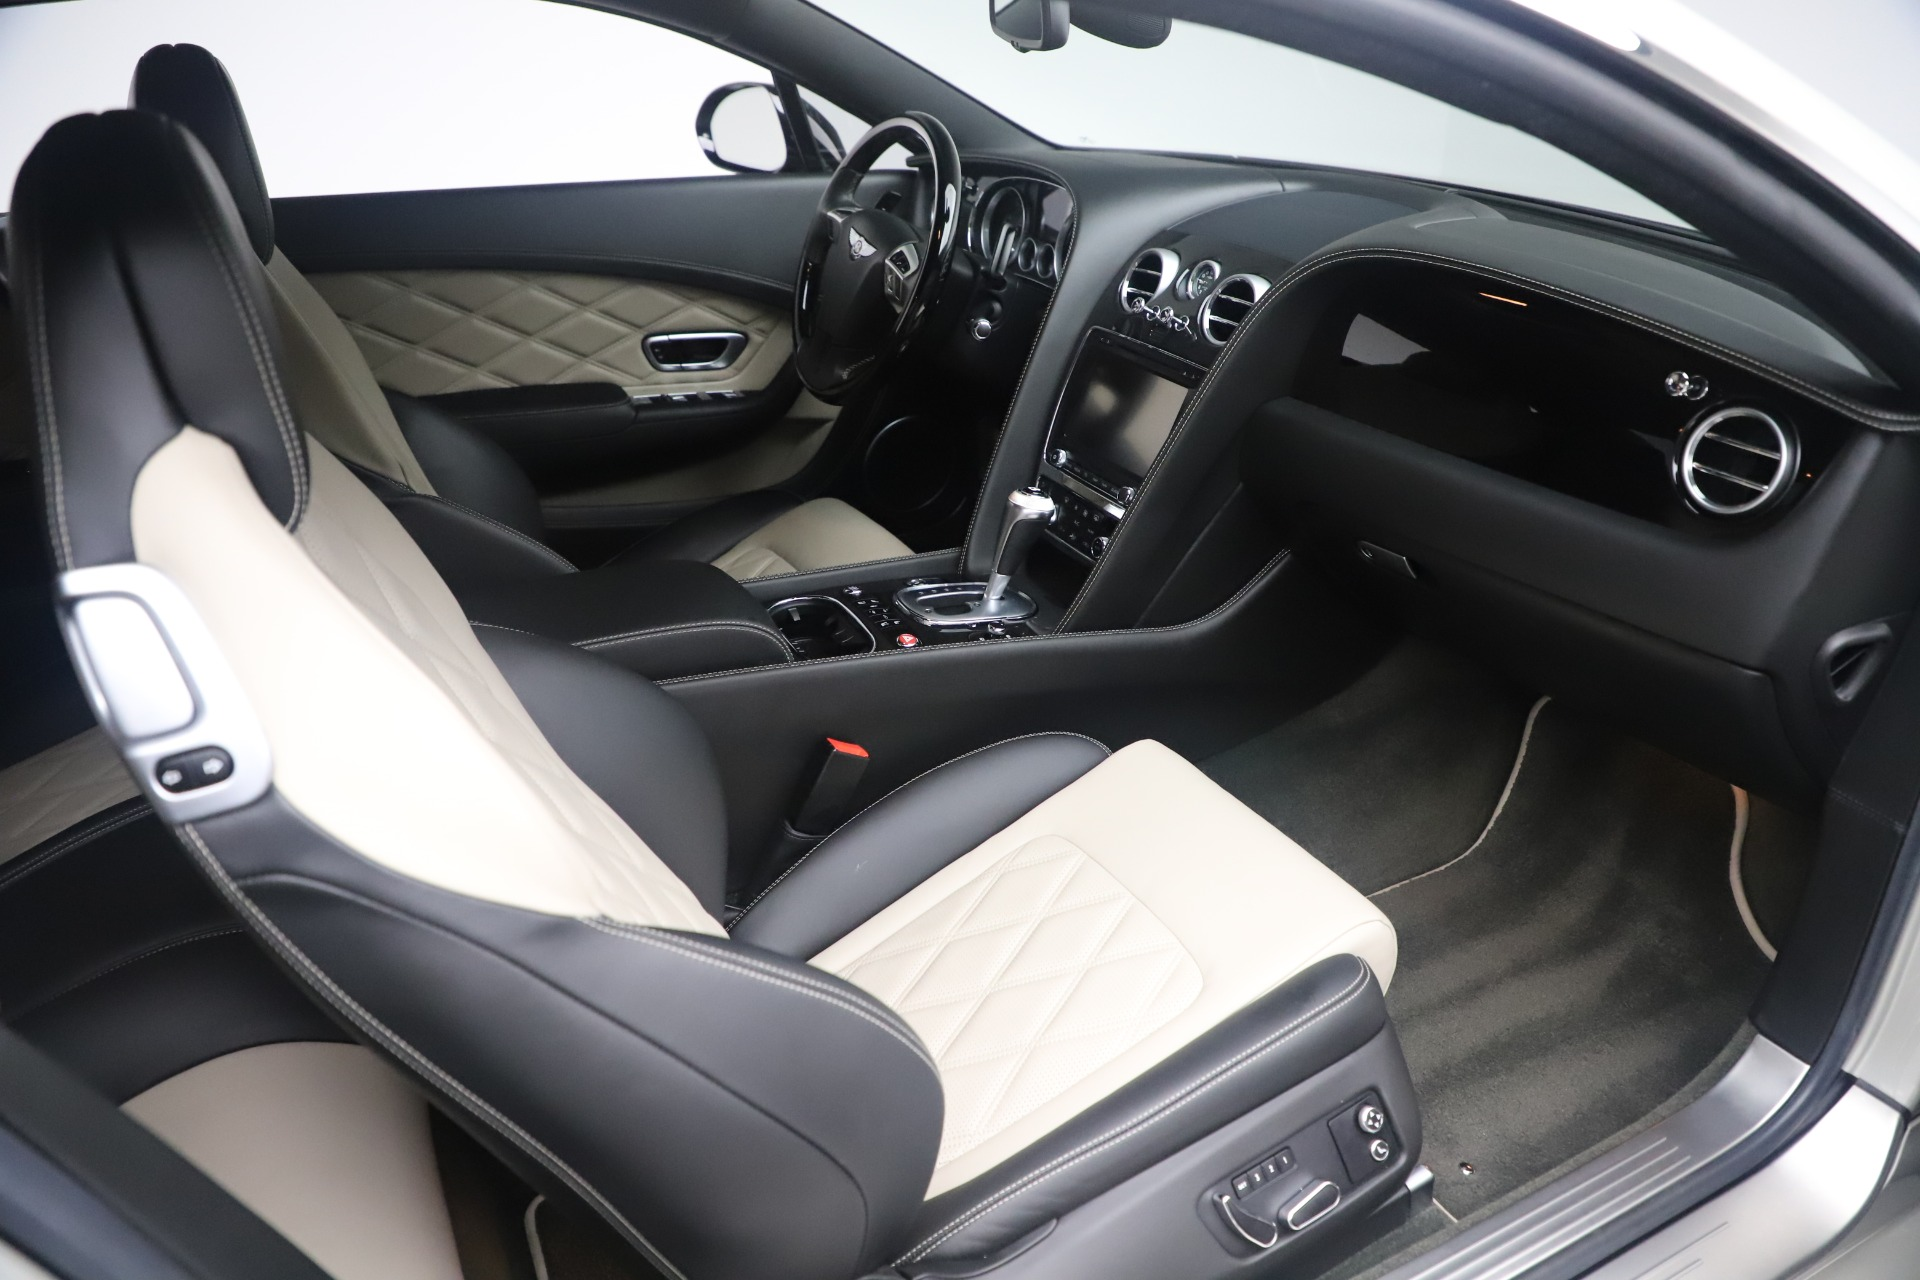 Used 2014 Bentley Continental GT V8 S For Sale In Westport, CT 3541_p23